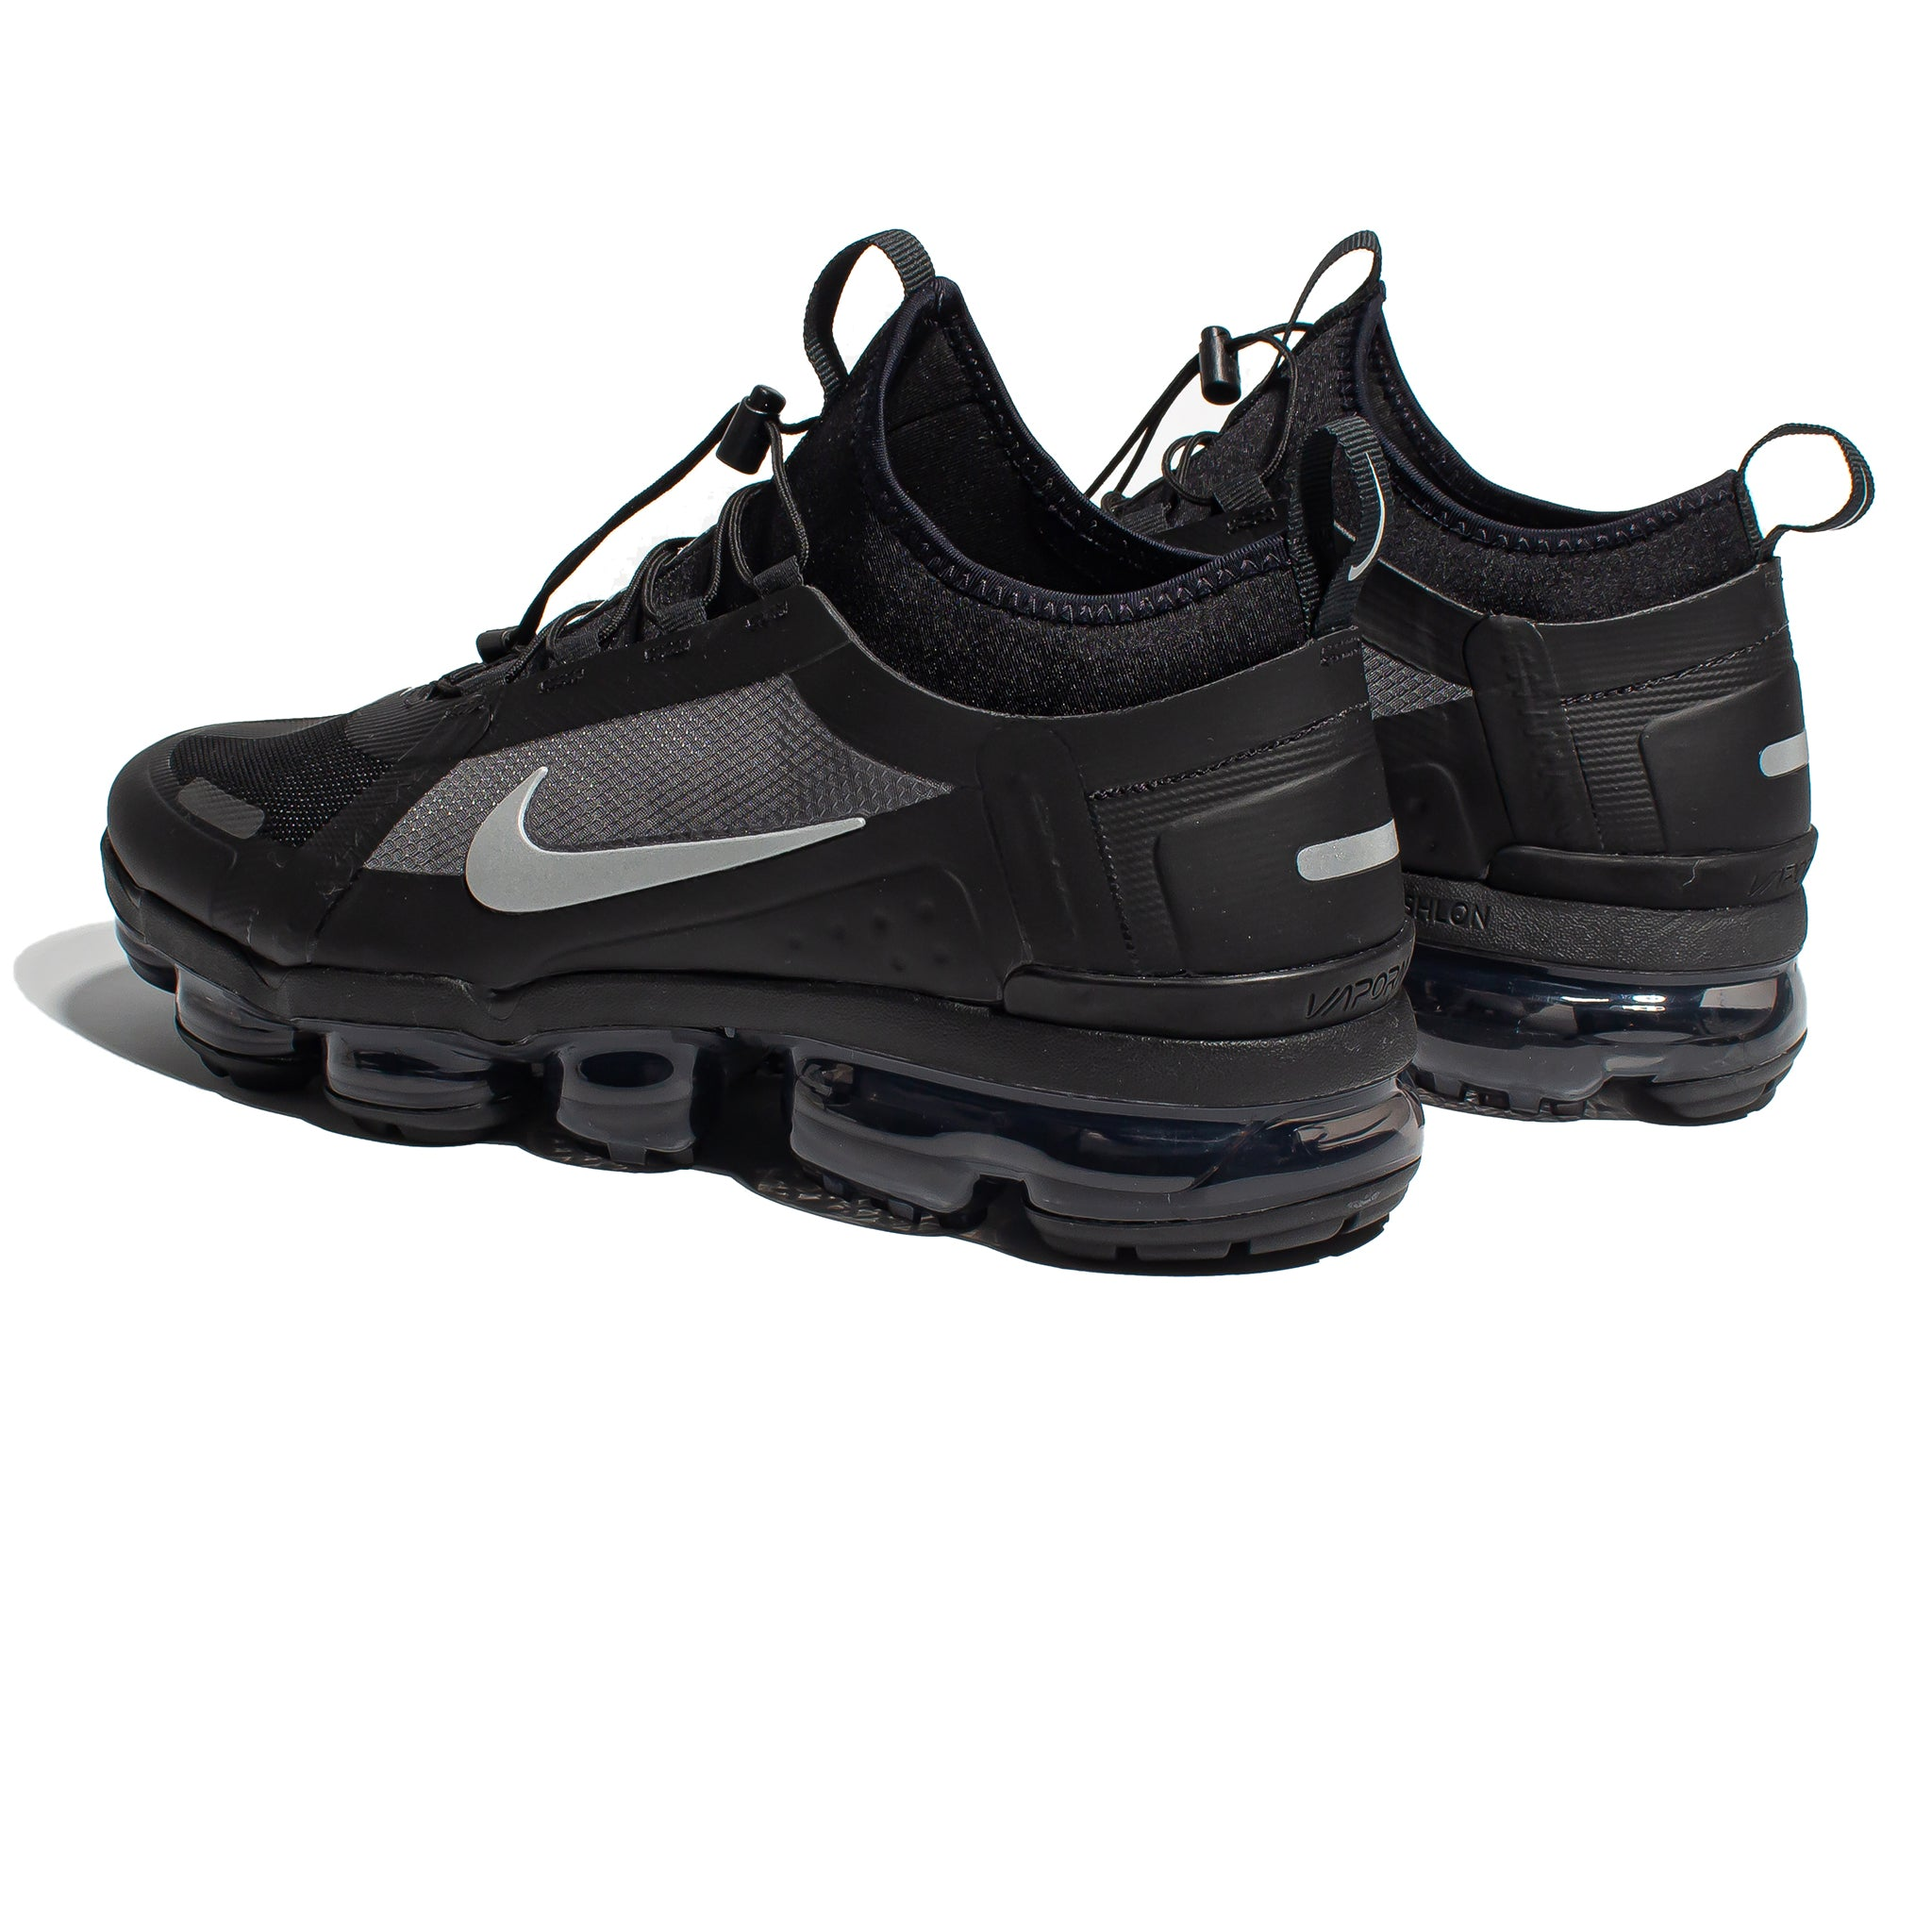 Nike Air Vapormax Utility 'Black/Metallic Silver'